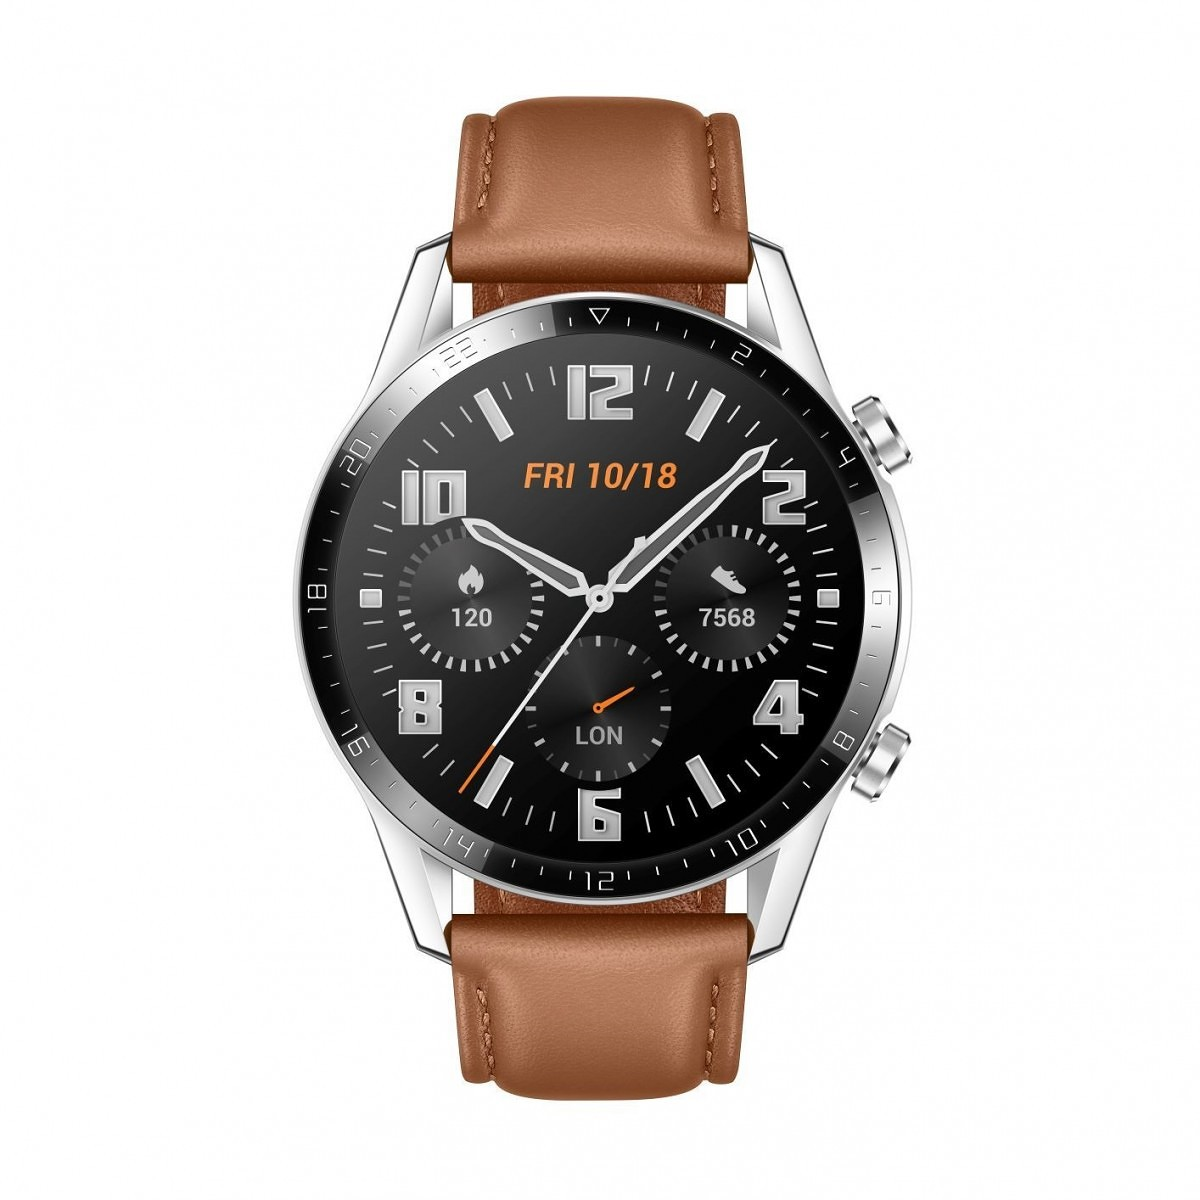 Huawei Watch GT 2 now available in India